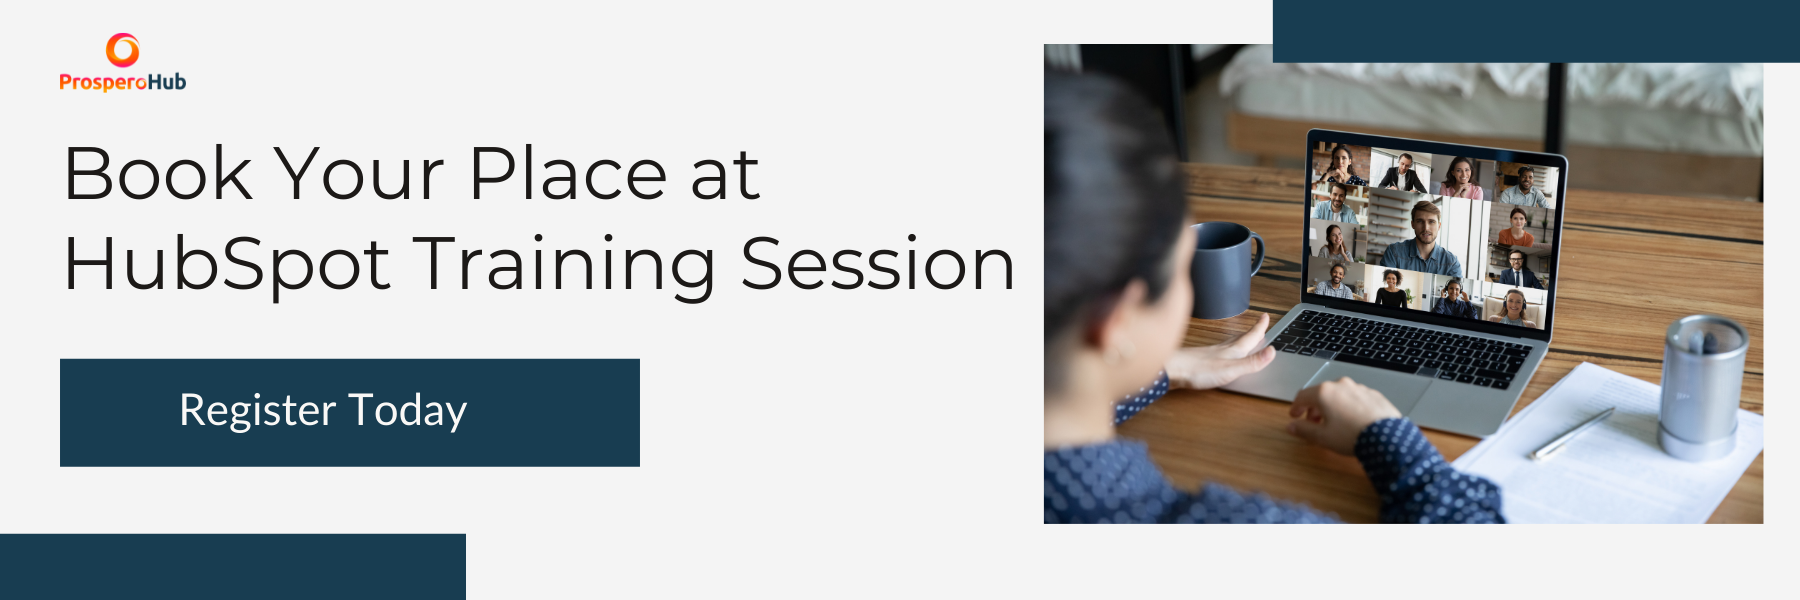 CTA - Book Your Place at  HubSpot Training Session